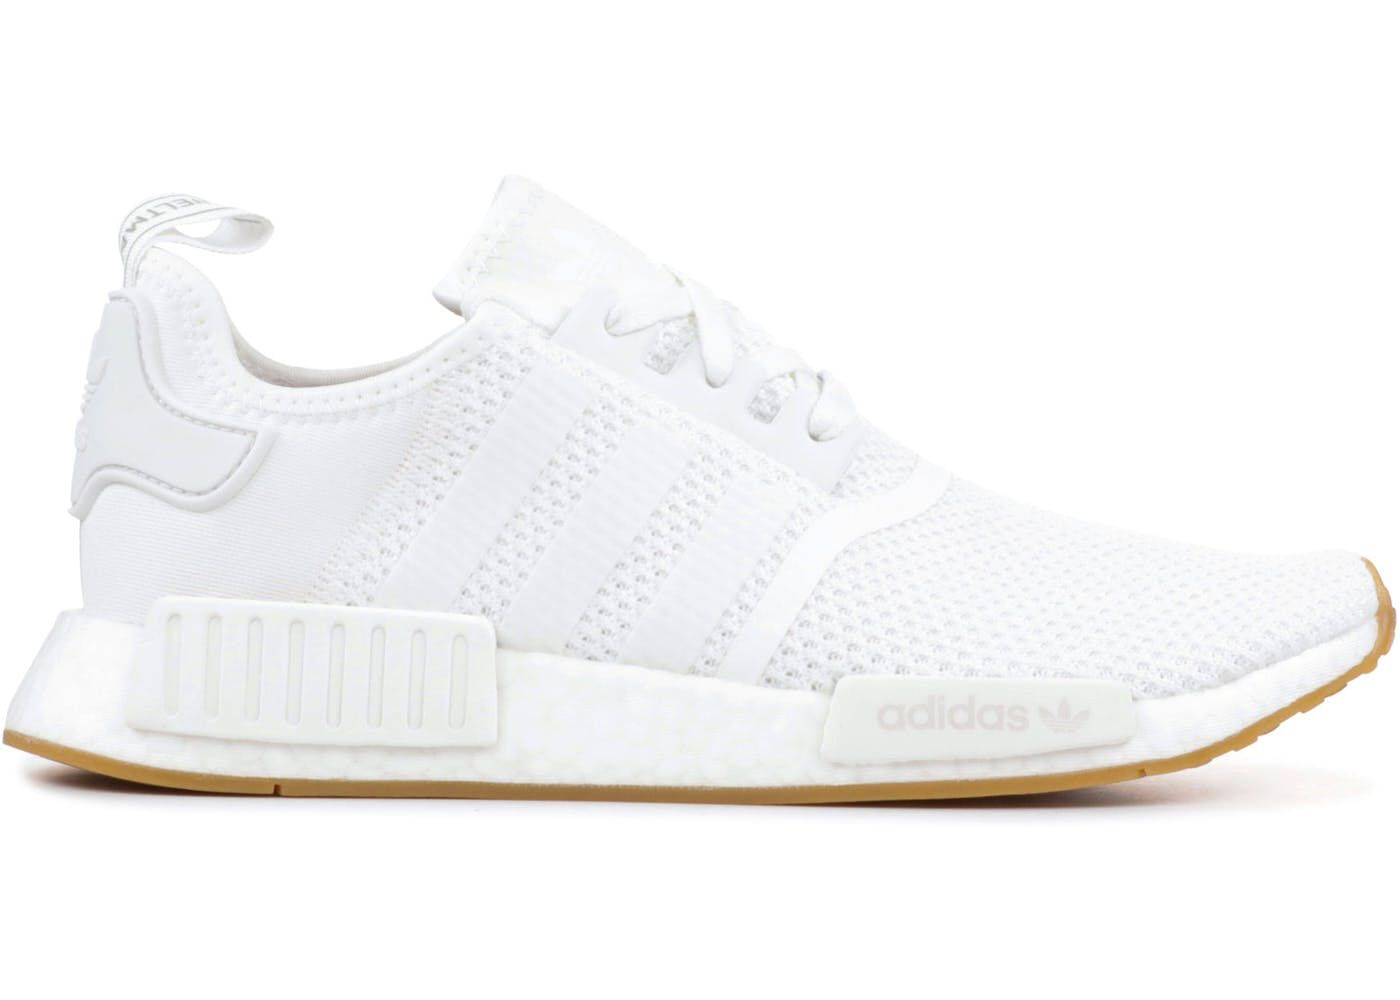 Check out the adidas NMD R1 White Gum